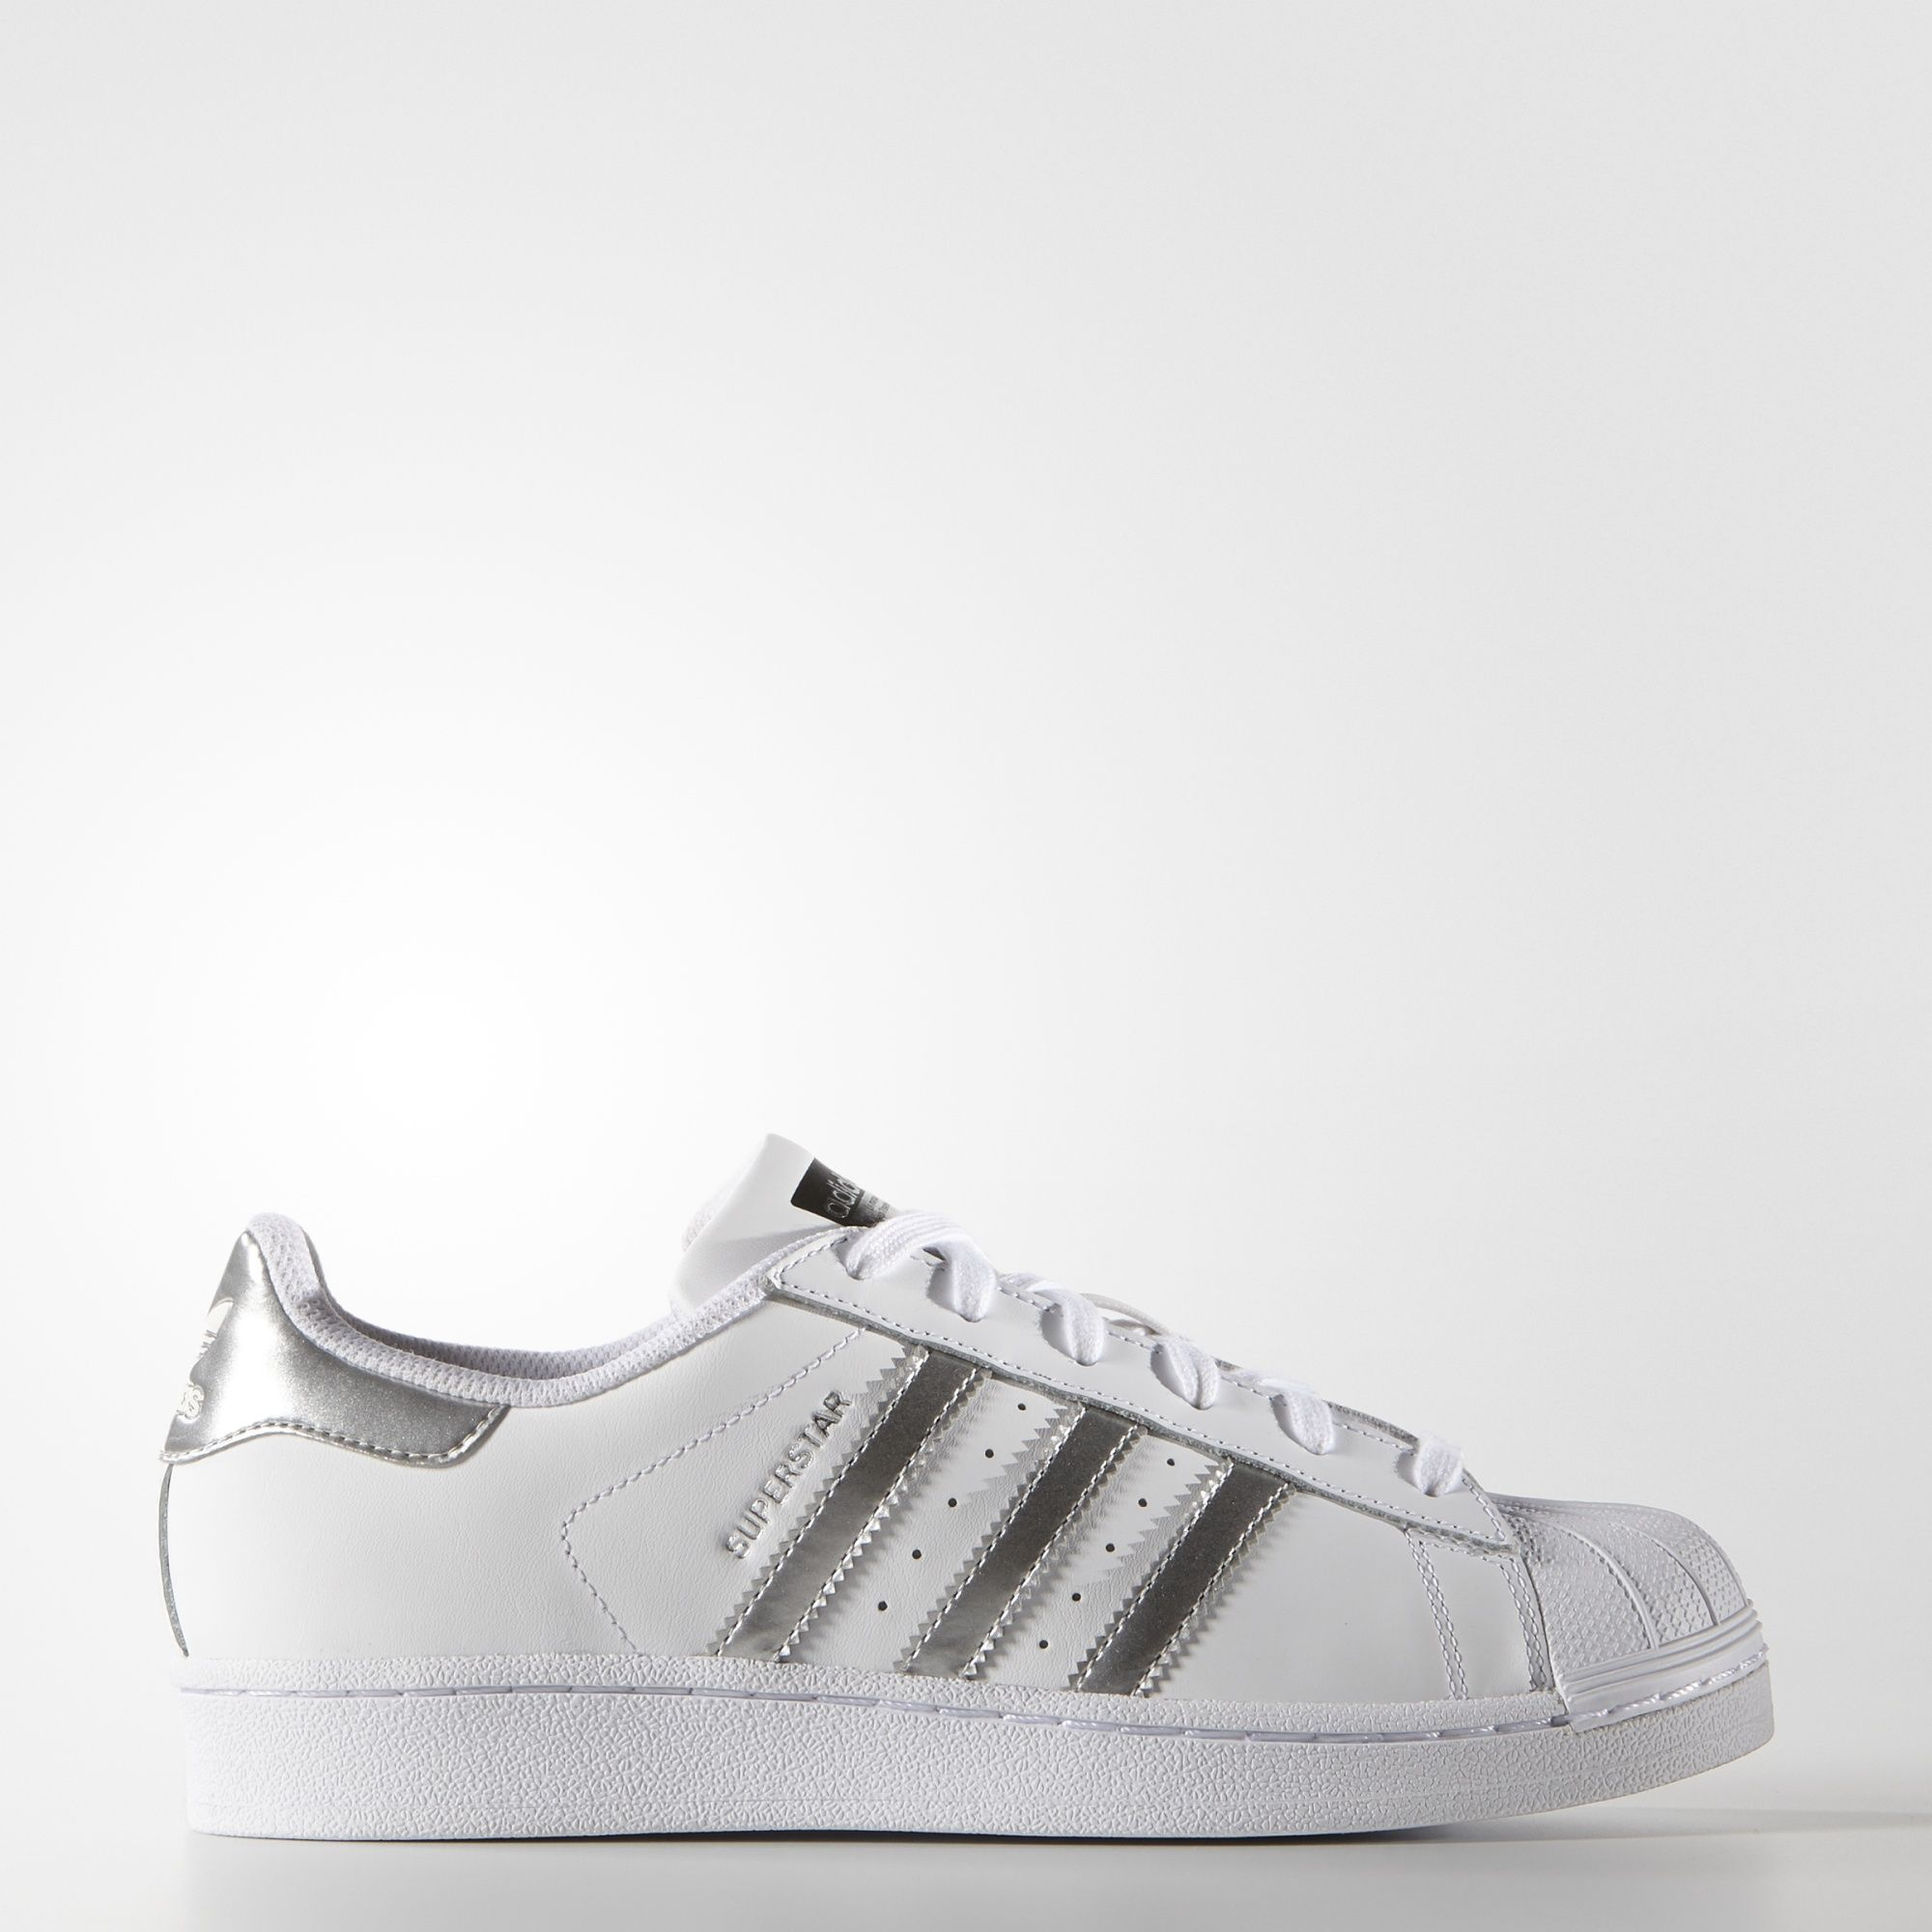 wholesale dealer a7616 d401e scarpe da ginnastica donna 2017  adidas  superstar  silver